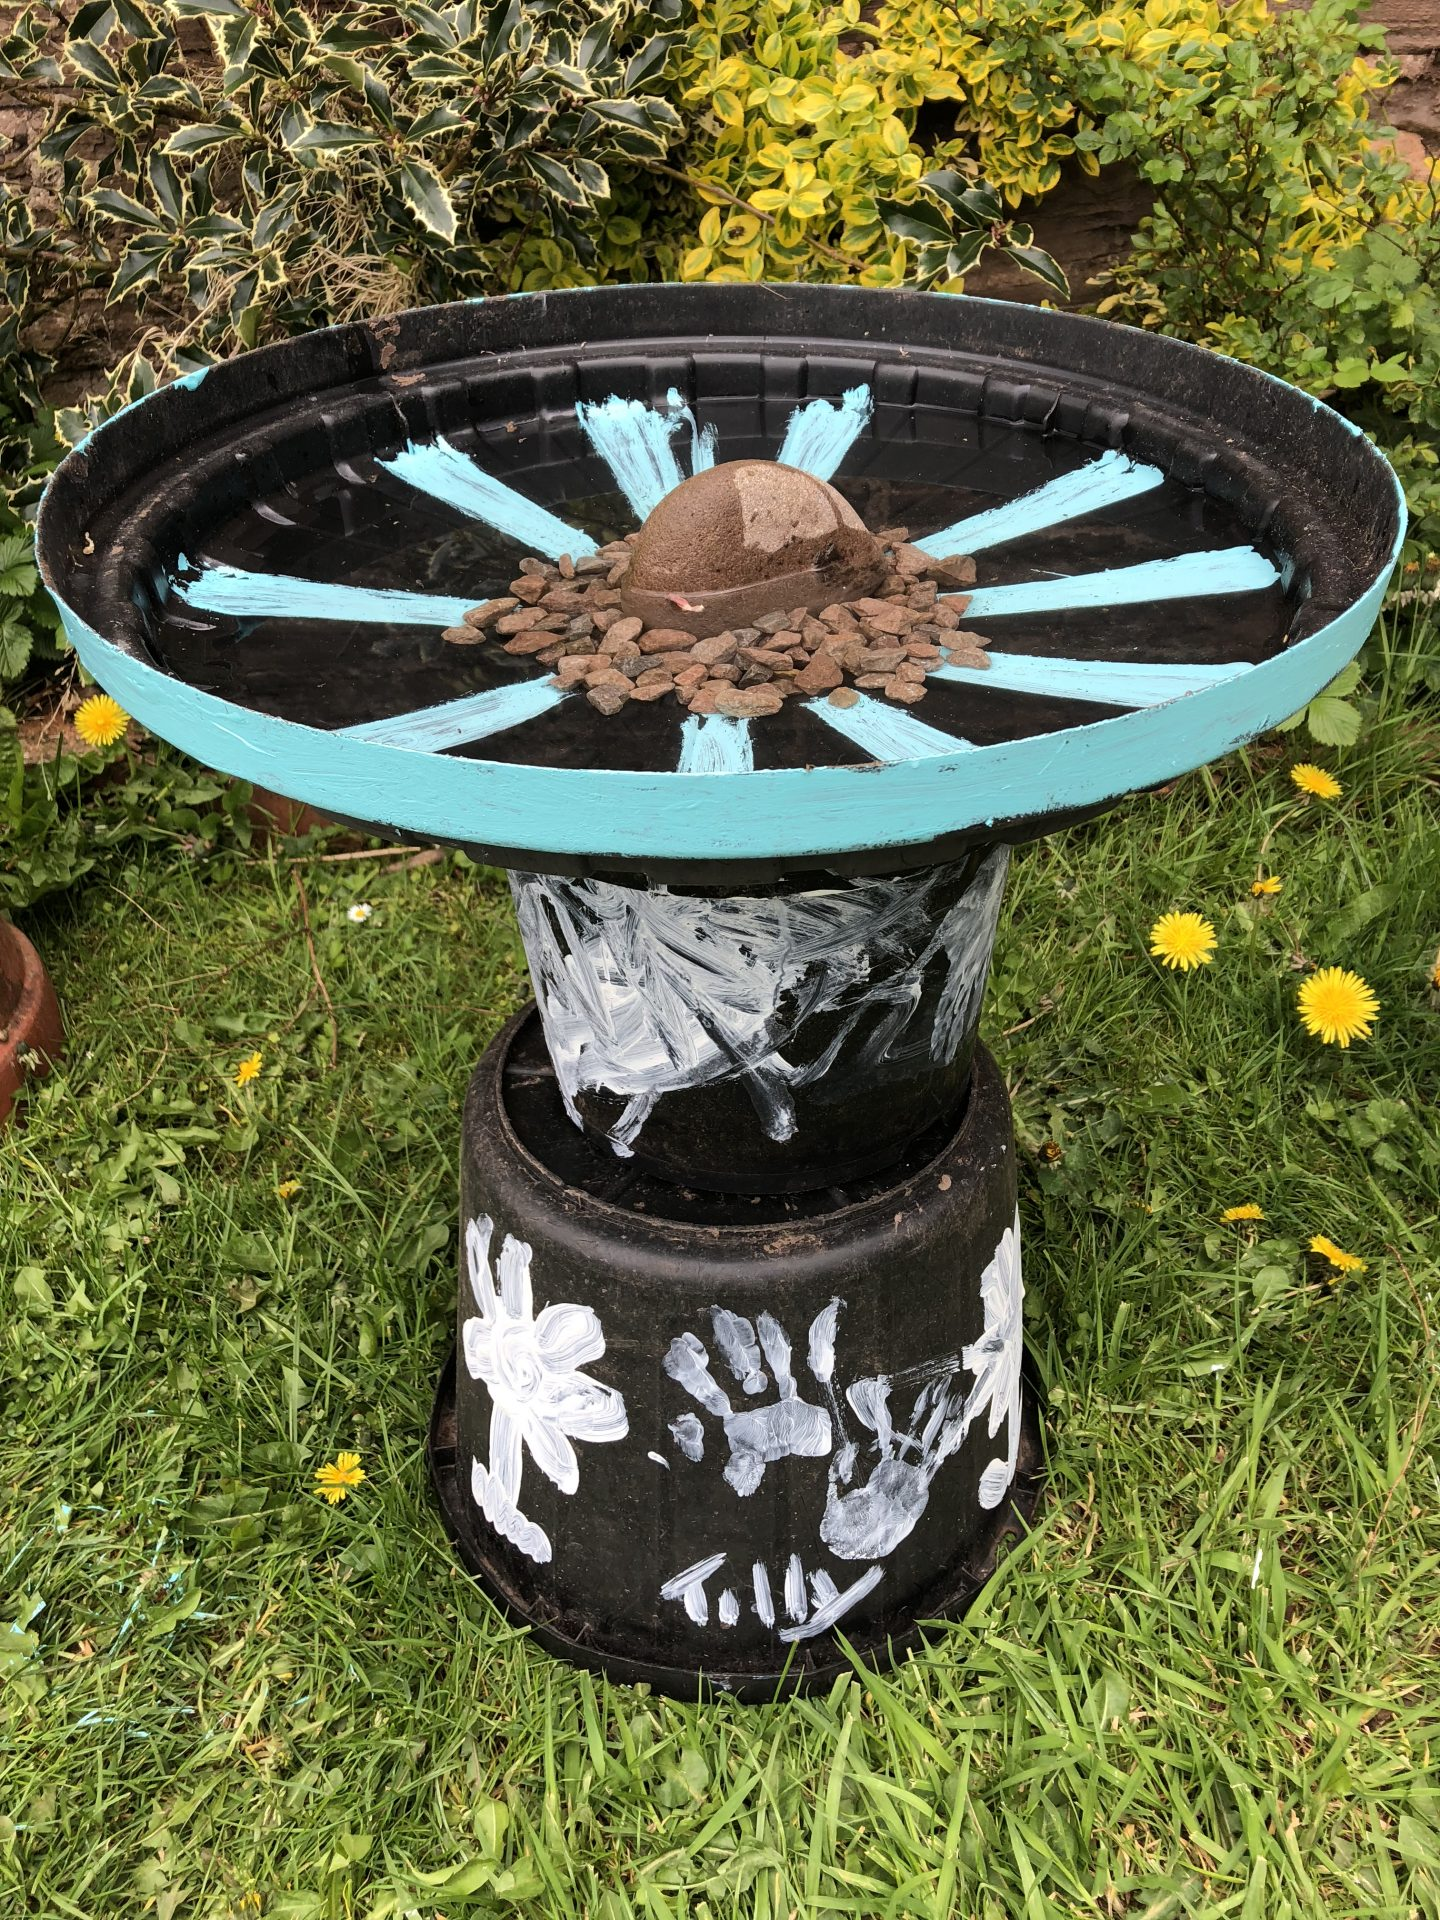 Creating a bird bath